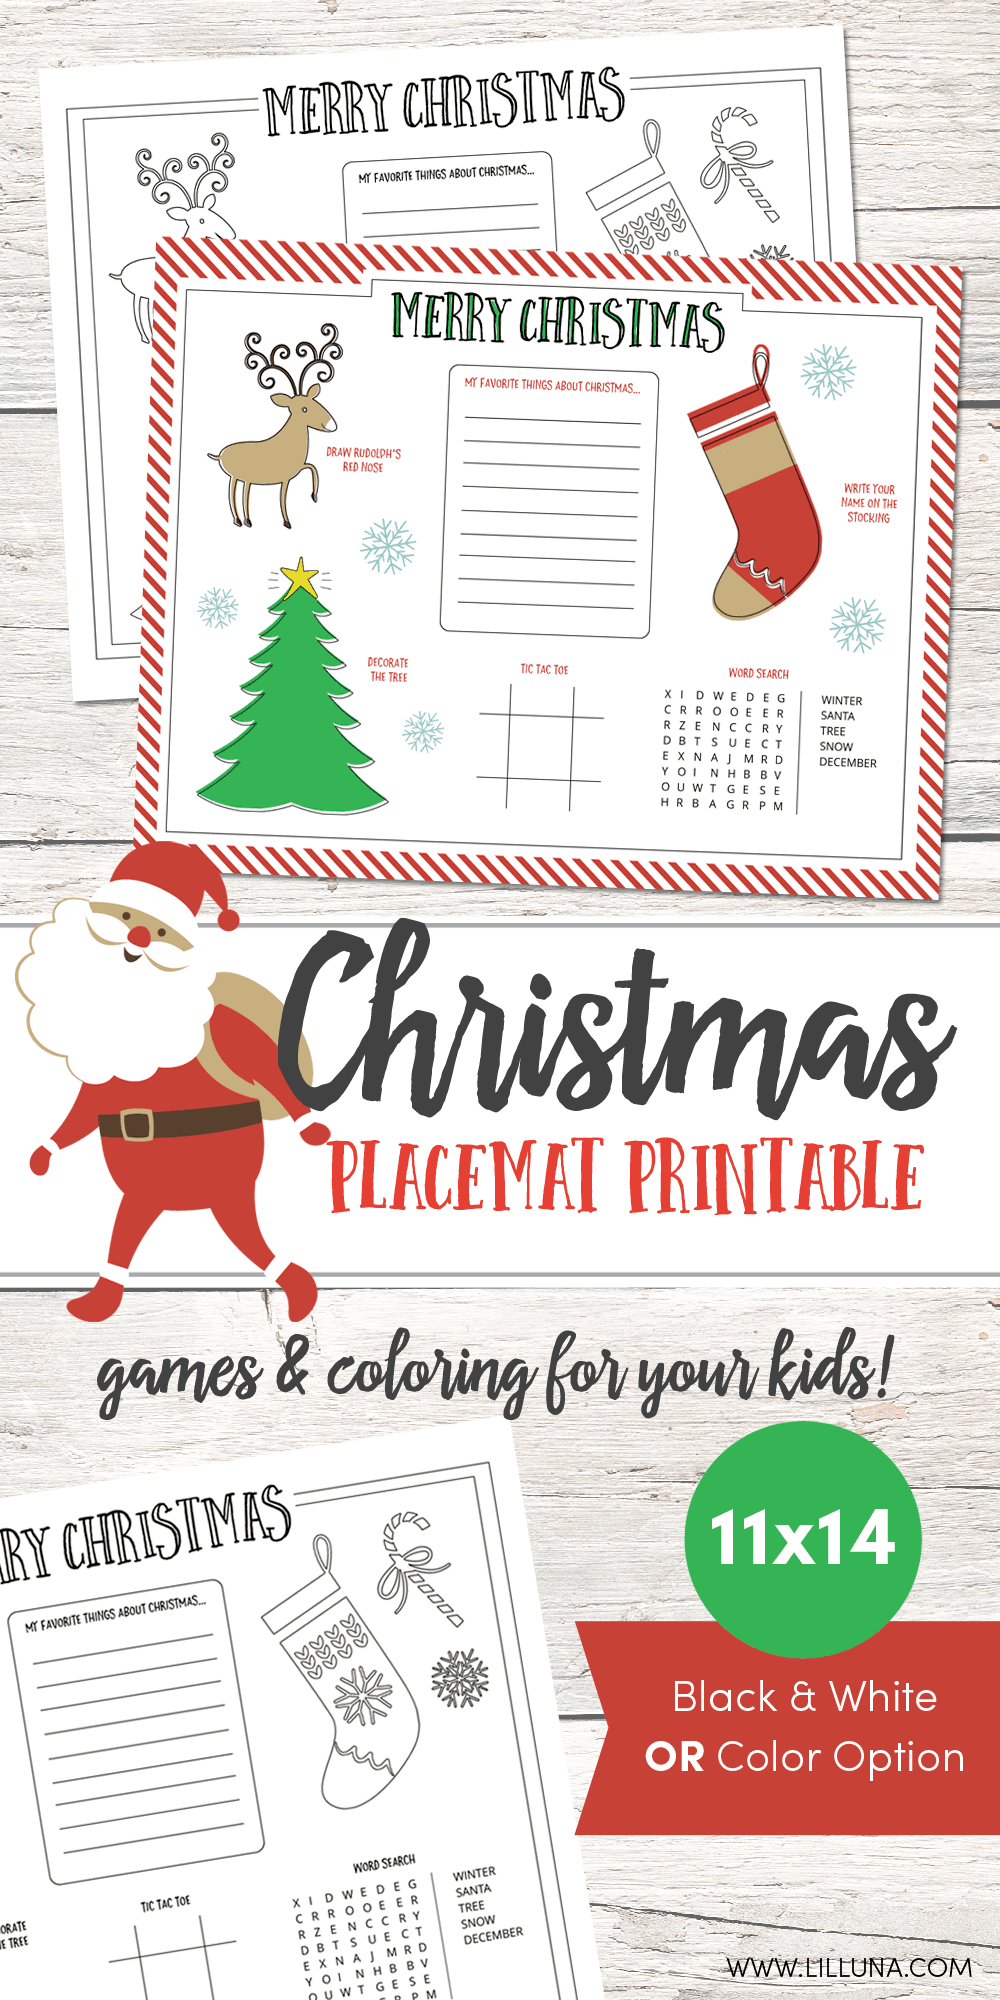 FREE Christmas Placemat Printable - perfect for upcoming Christmas activities and get togethers. The kids will love these!!